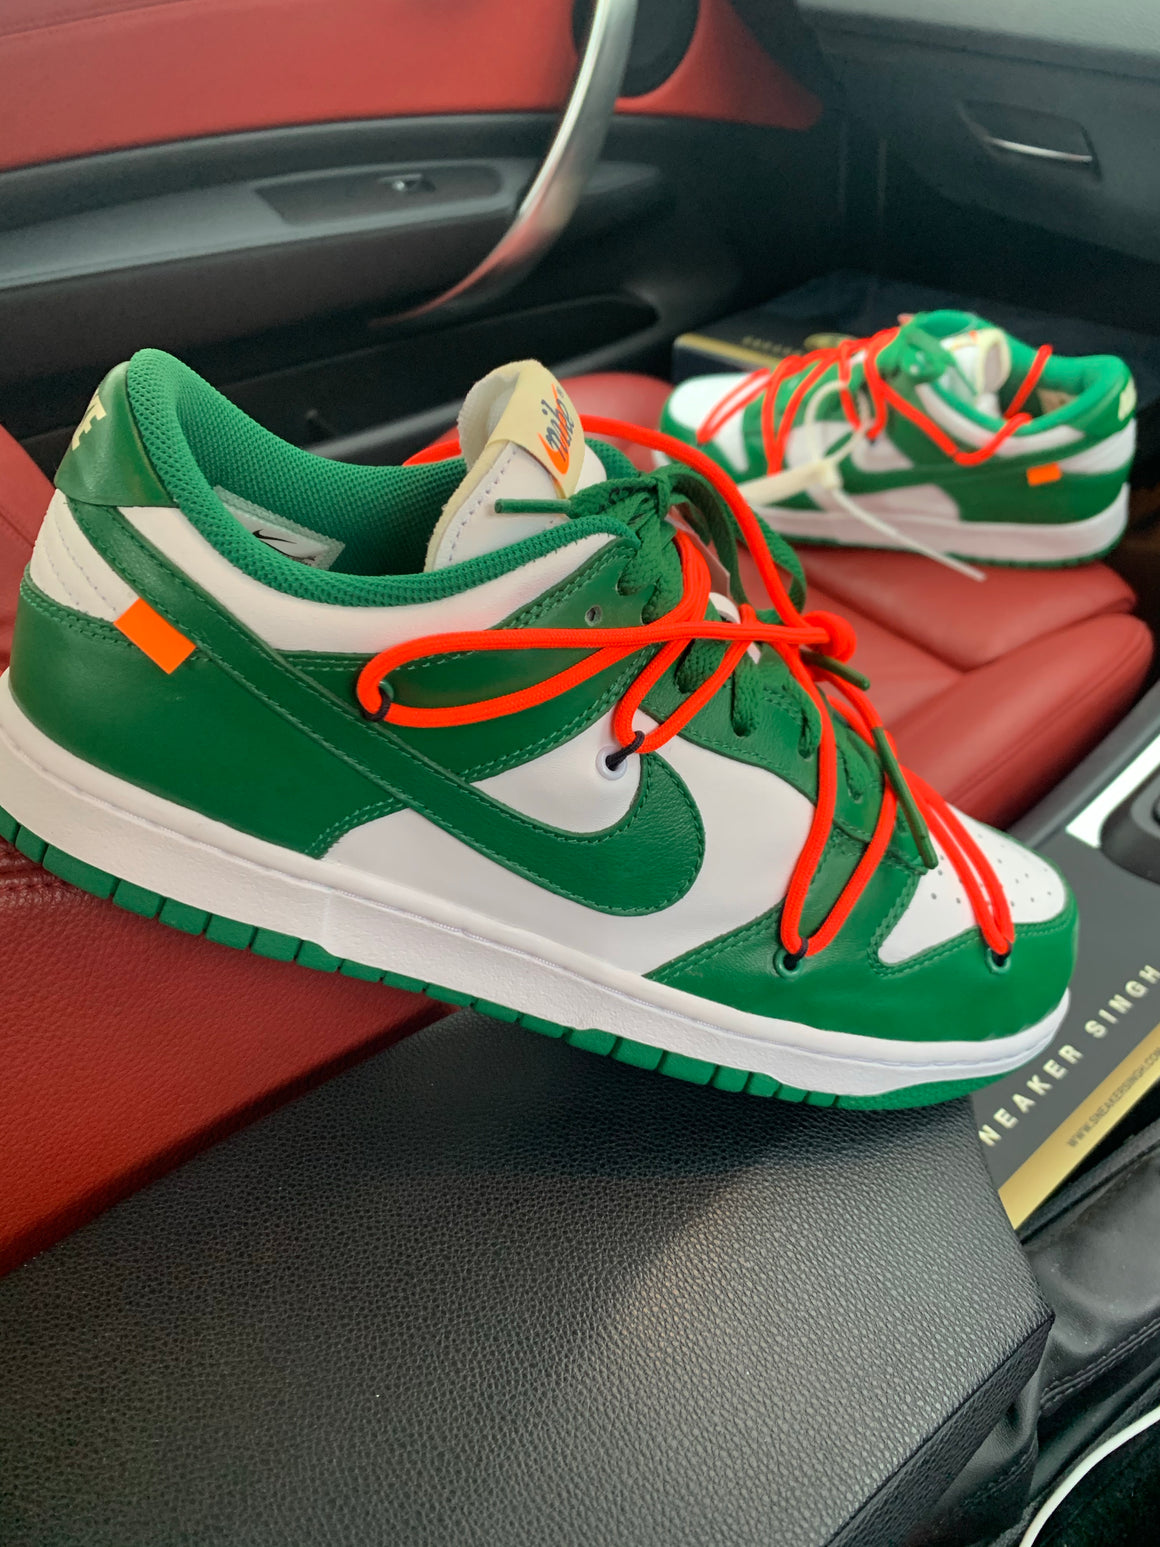 NIKE DUNK LOW X OFF WHITE 'PINE GREEN'